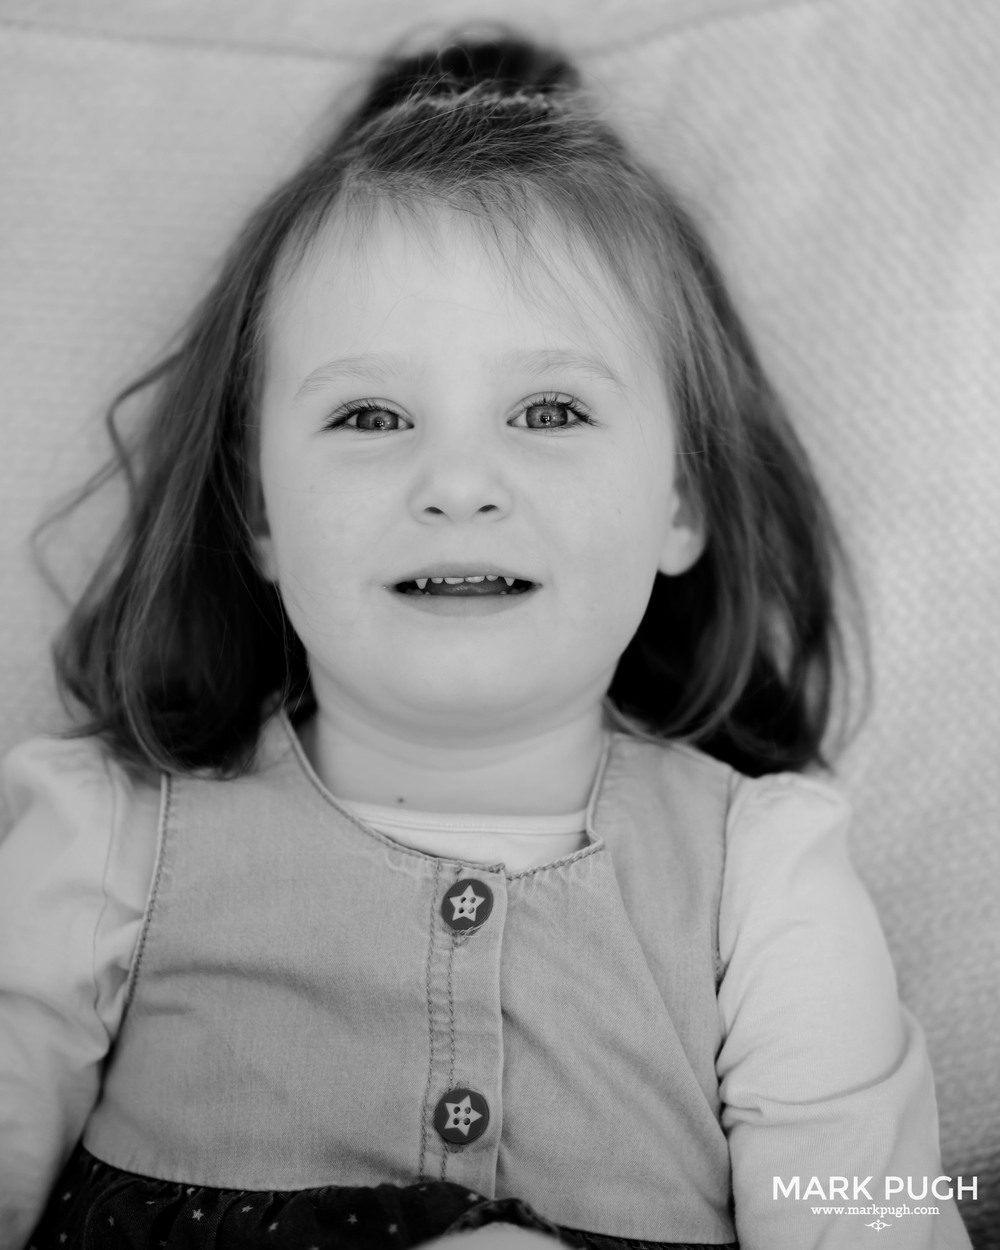 008 - Emma Stuart Holly and Benjamin Family and Children Photography by Mark Pugh www.markpugh.com-44.jpg